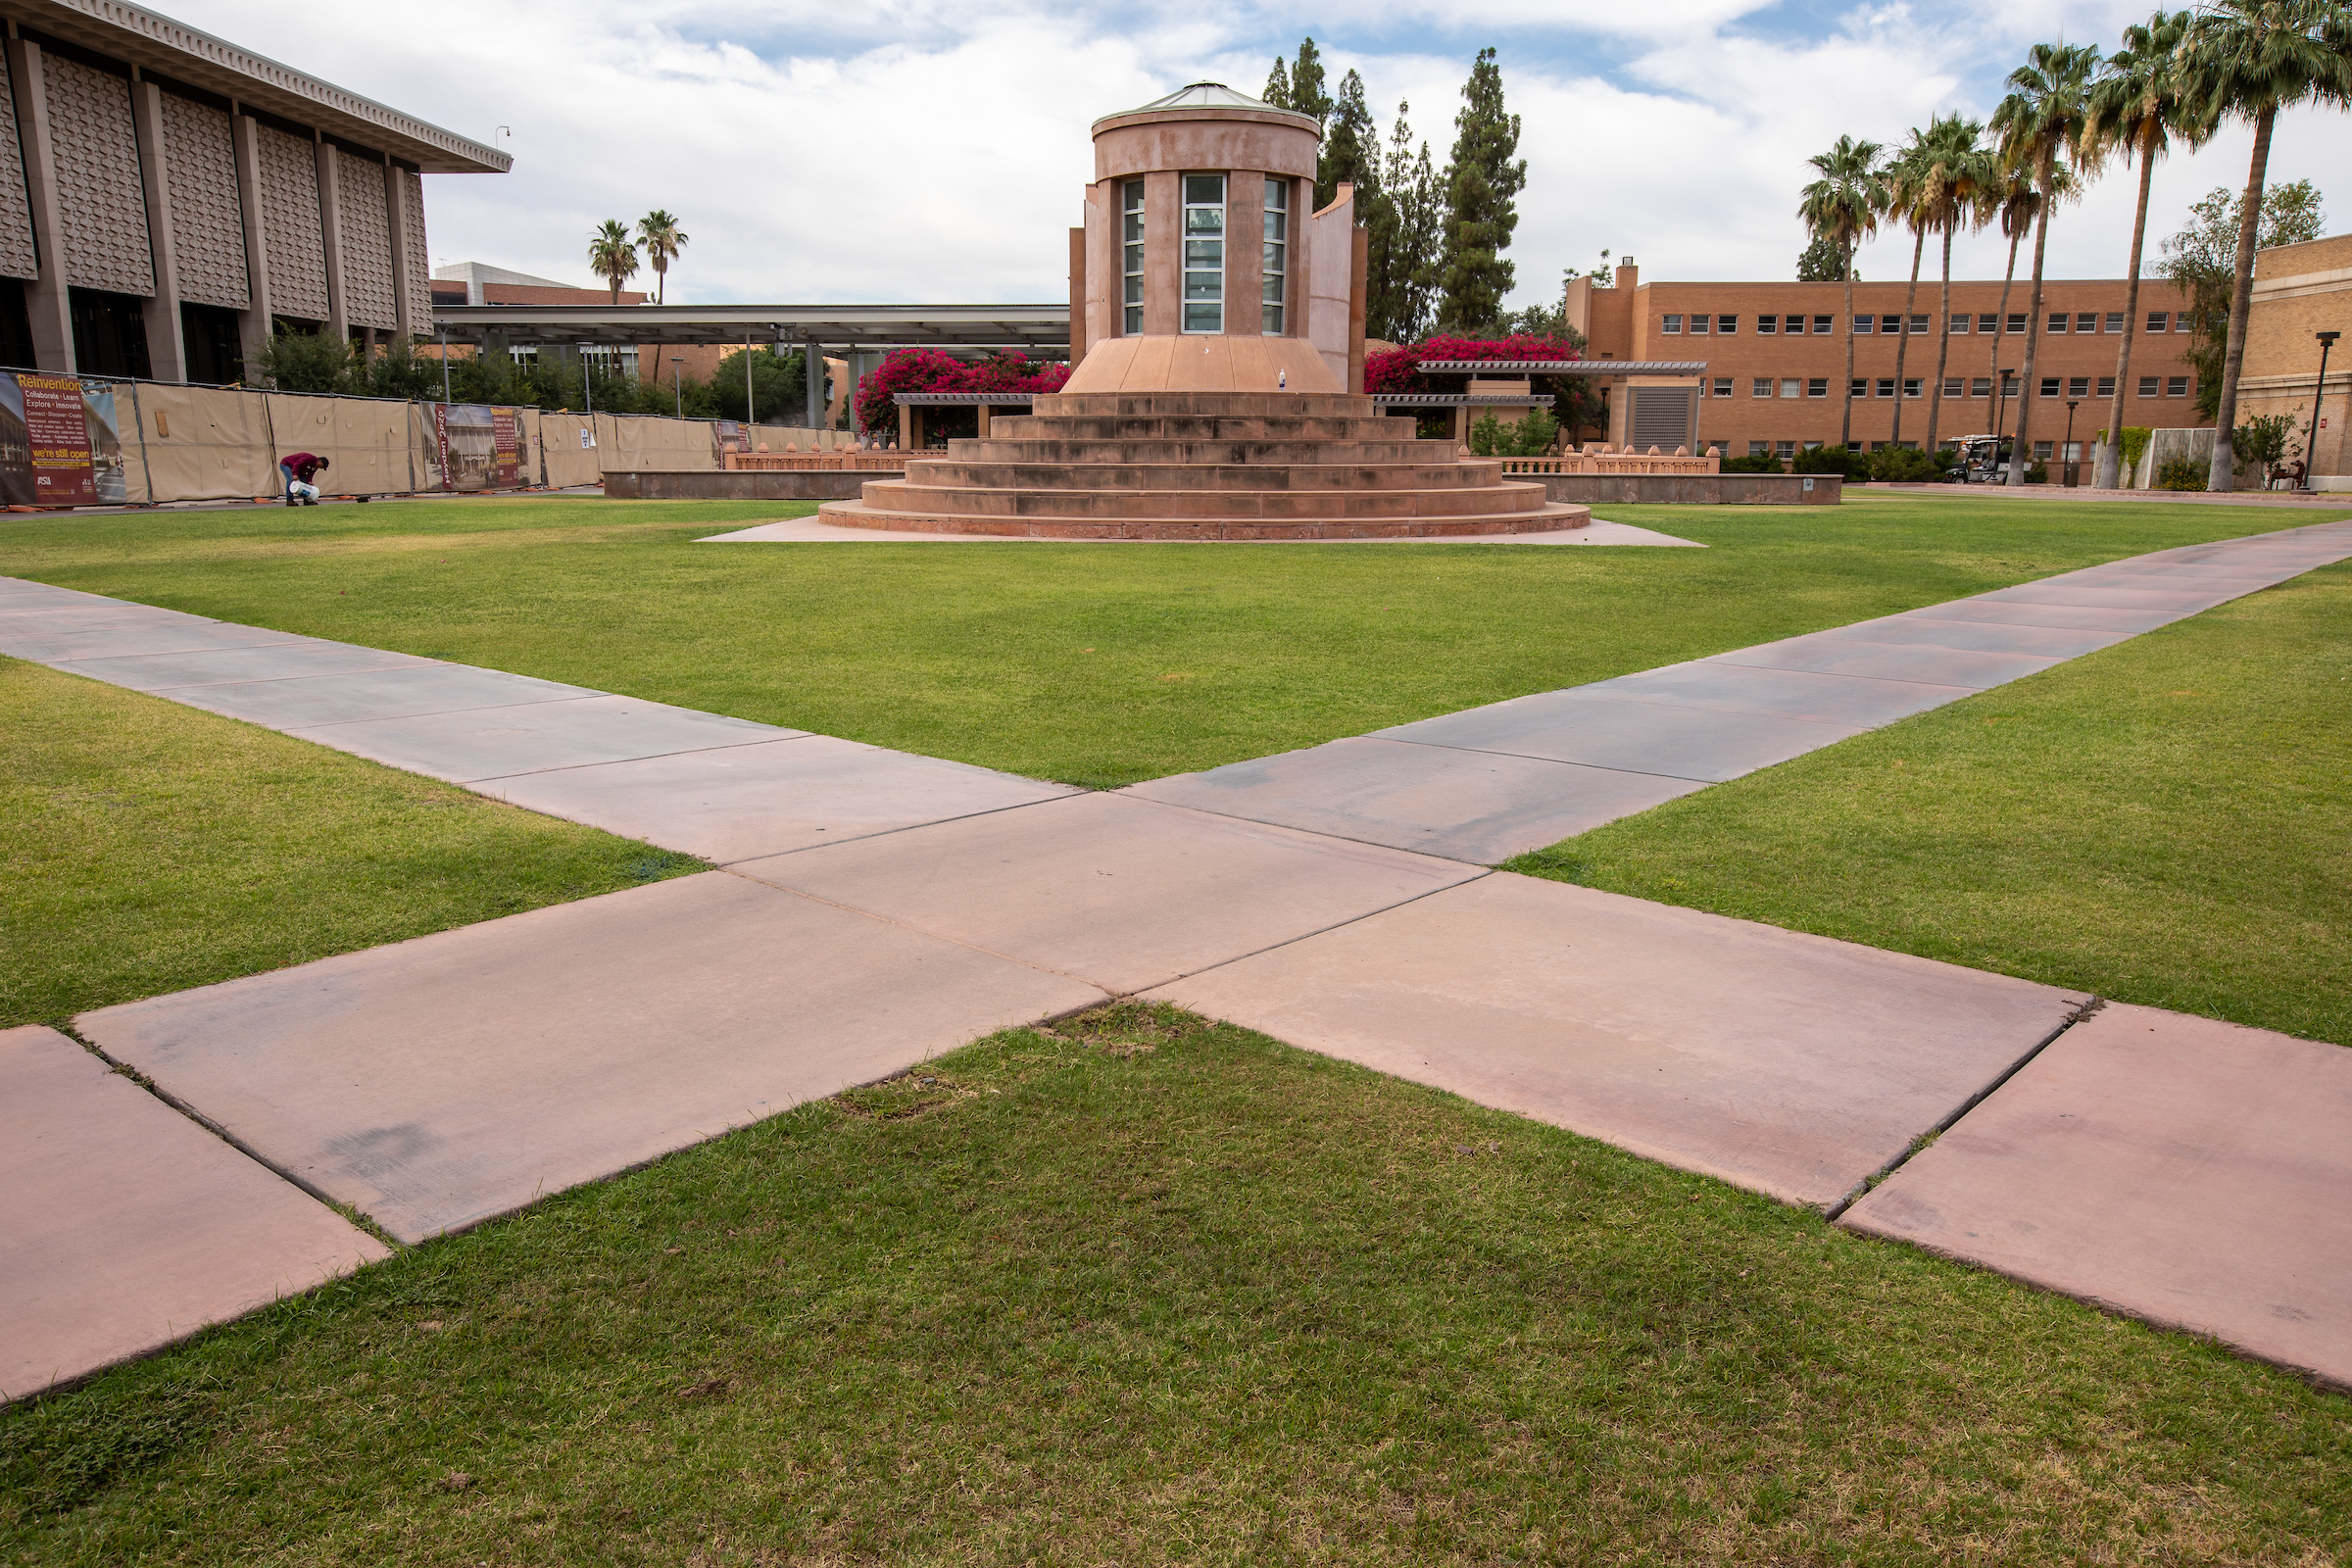 ASU urban climatologist reveals hottest and coolest spots on ... on npcc campus map, raytheon campus map, cmcc campus map, cisco campus map, tektronix campus map, tms campus map, cadence campus map, mga campus map, metro campus map, neo campus map, spc campus map, mtc campus map, letourneau campus map, cmc campus map, fsc campus map, sprint campus map, nova campus map, bayer campus map, umc campus map, emc campus map,